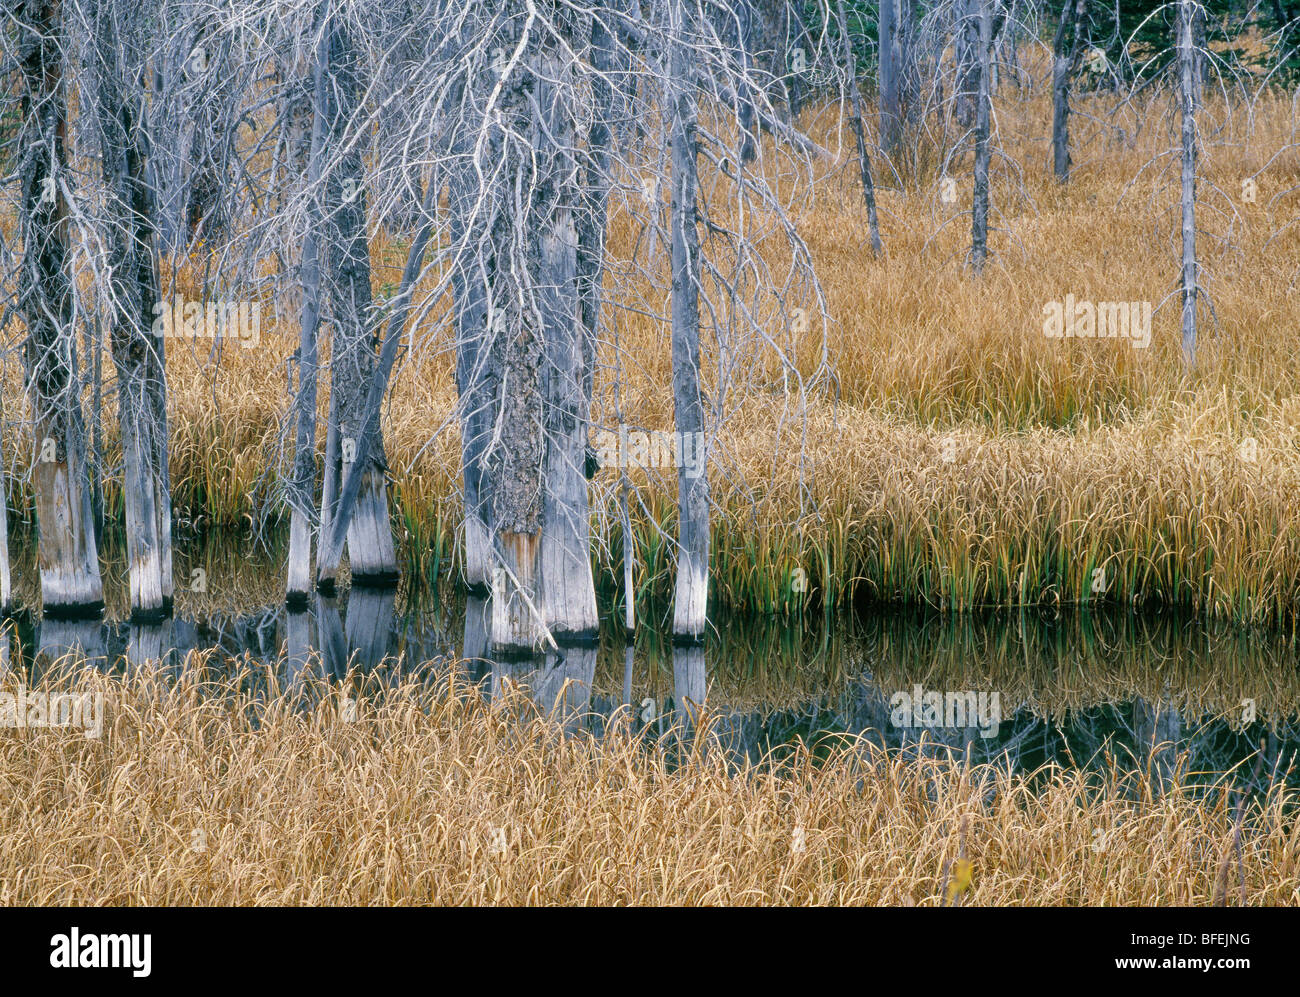 Dead spruce in pond, Peter Lougheed Provincial Park, Kananaskis Country, Alberta, Canada - Stock Image